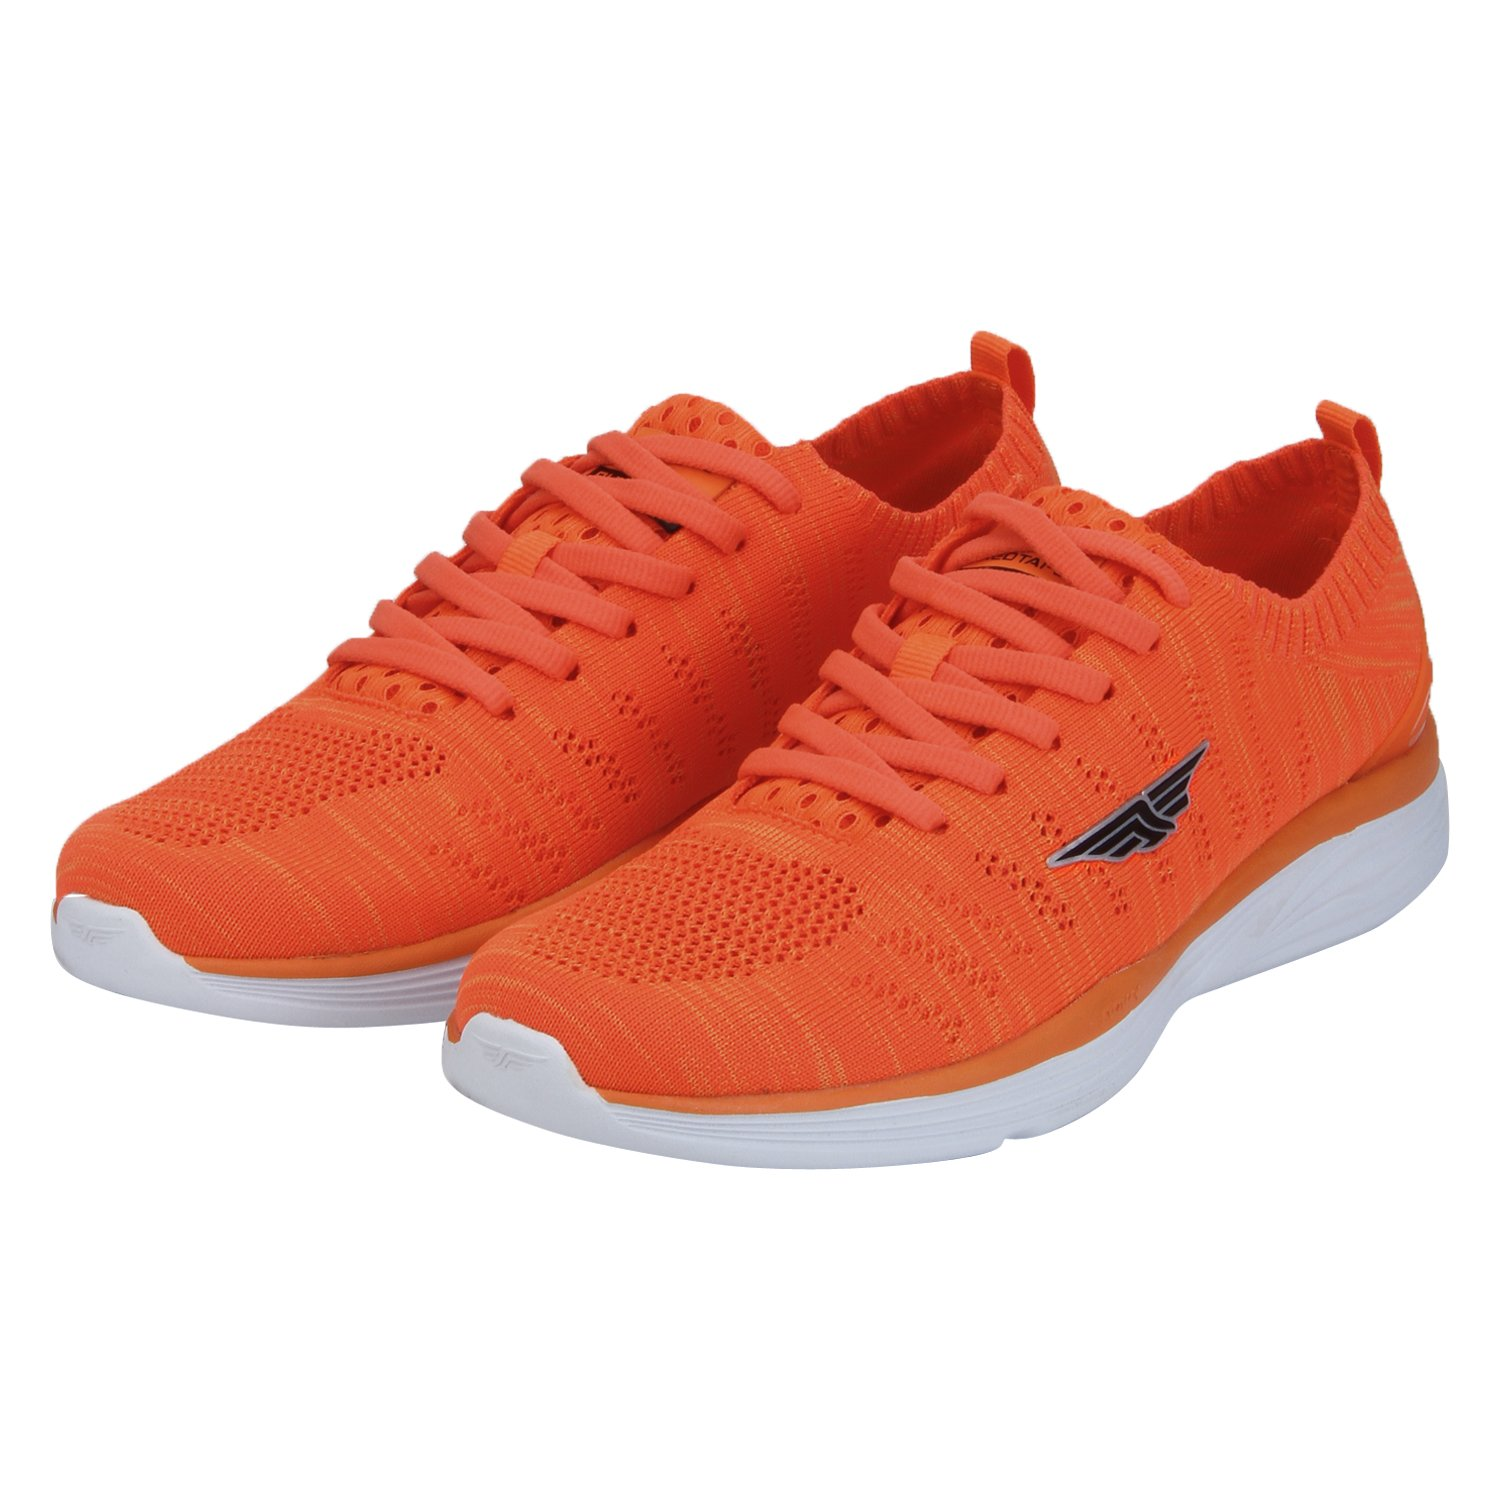 8292b2d0be8 Red Tape Men s Orange Running Shoes  Buy Online at Low Prices in India -  Amazon.in